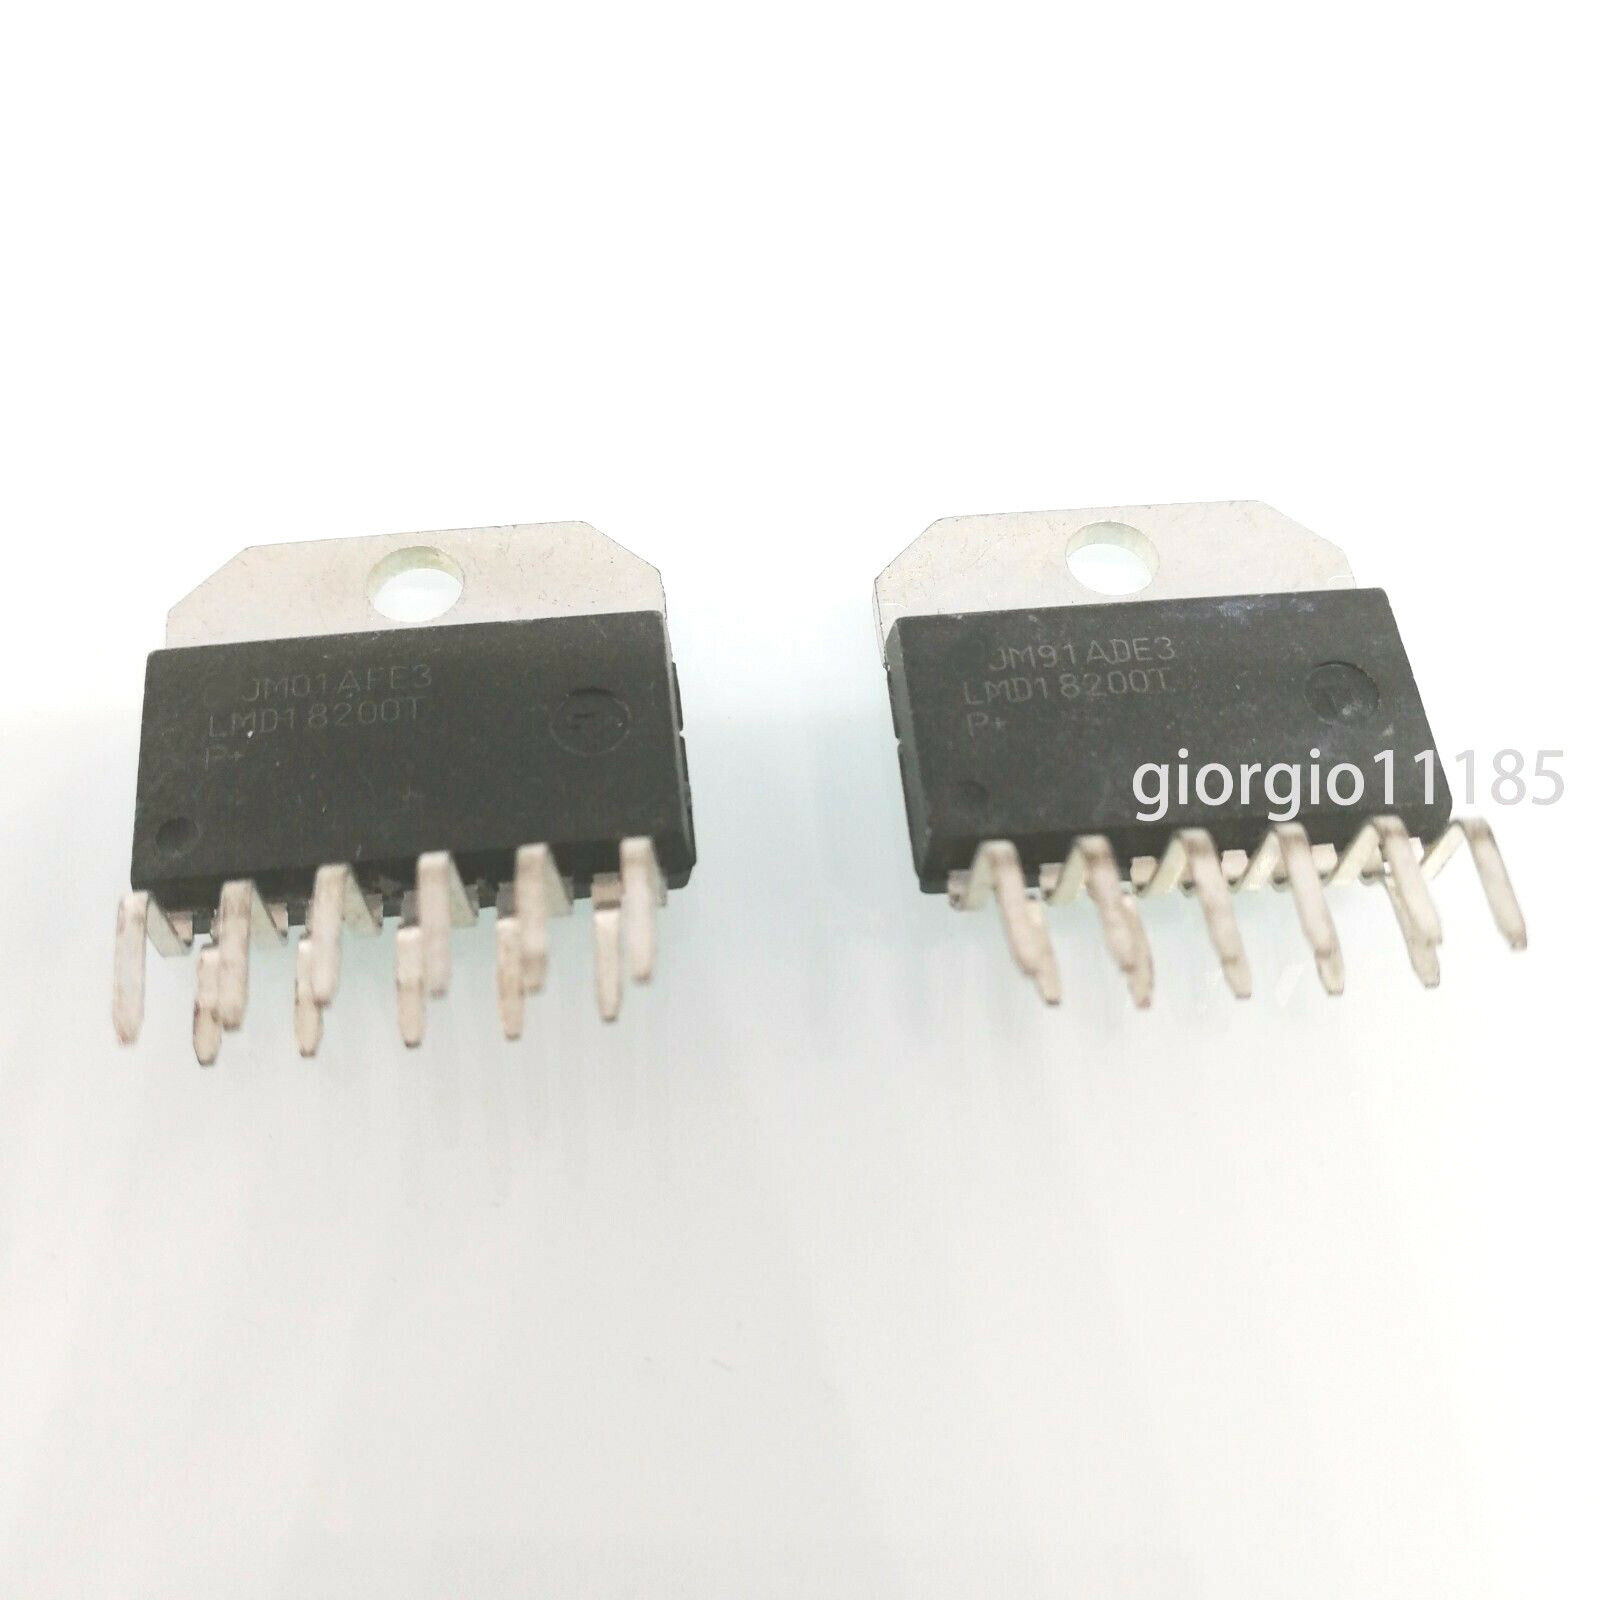 Us Stock 2pcs Lmd18200t 3a 55v H Bridge Zip 11 Stepper Motor Driver Photos Of Circuit Power 1 4free Shipping See More